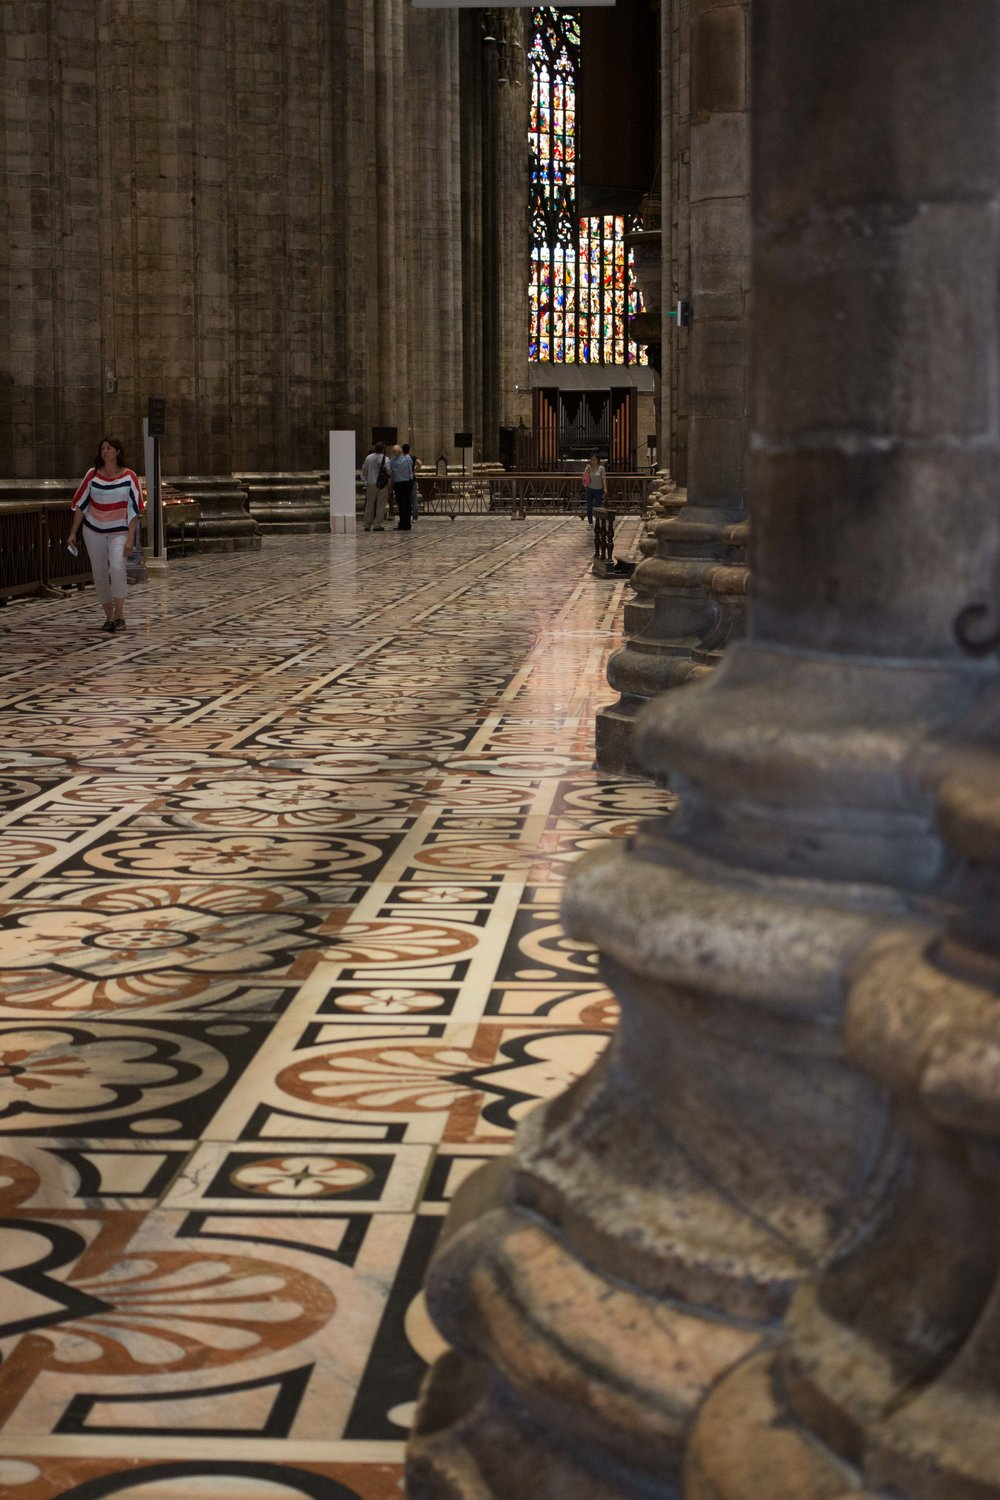 Ornate flooring of the milan Cathedral